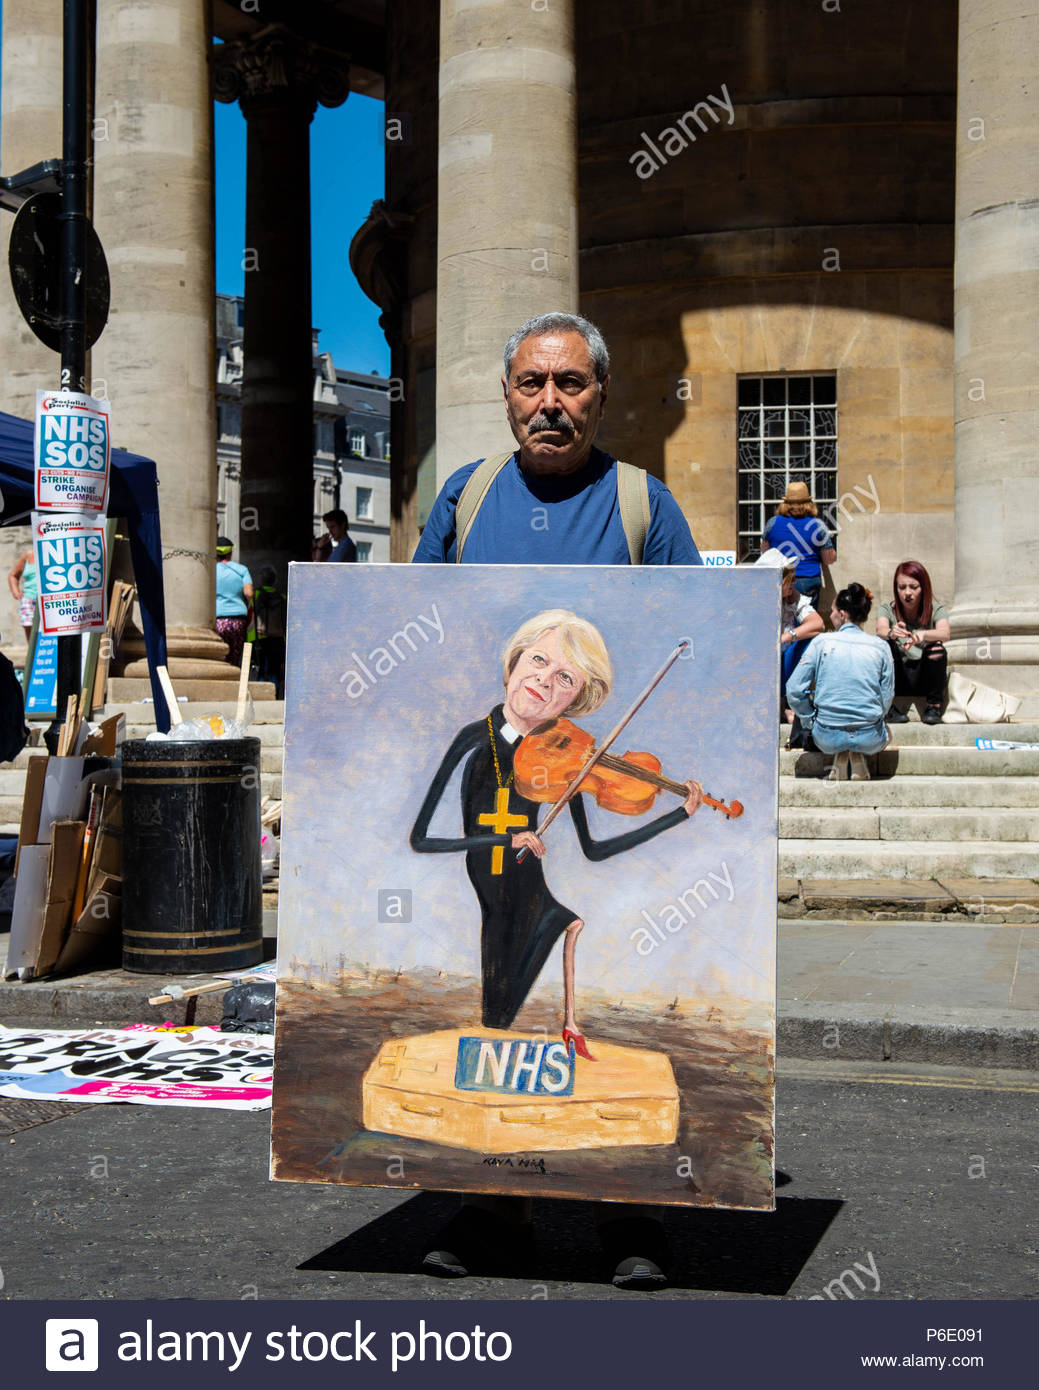 Artist Kaya Mar with his work of art for today's event  London, Great Britain, 30 Jun 2018 A mixture of celebration and demonstration for the thousands of attendees. Celebrating the 70th Birthday of the NHS, and demonstrating to keep it properly funded and free for everyone.  Credit: David Nash/Alamy Live News - Stock Image